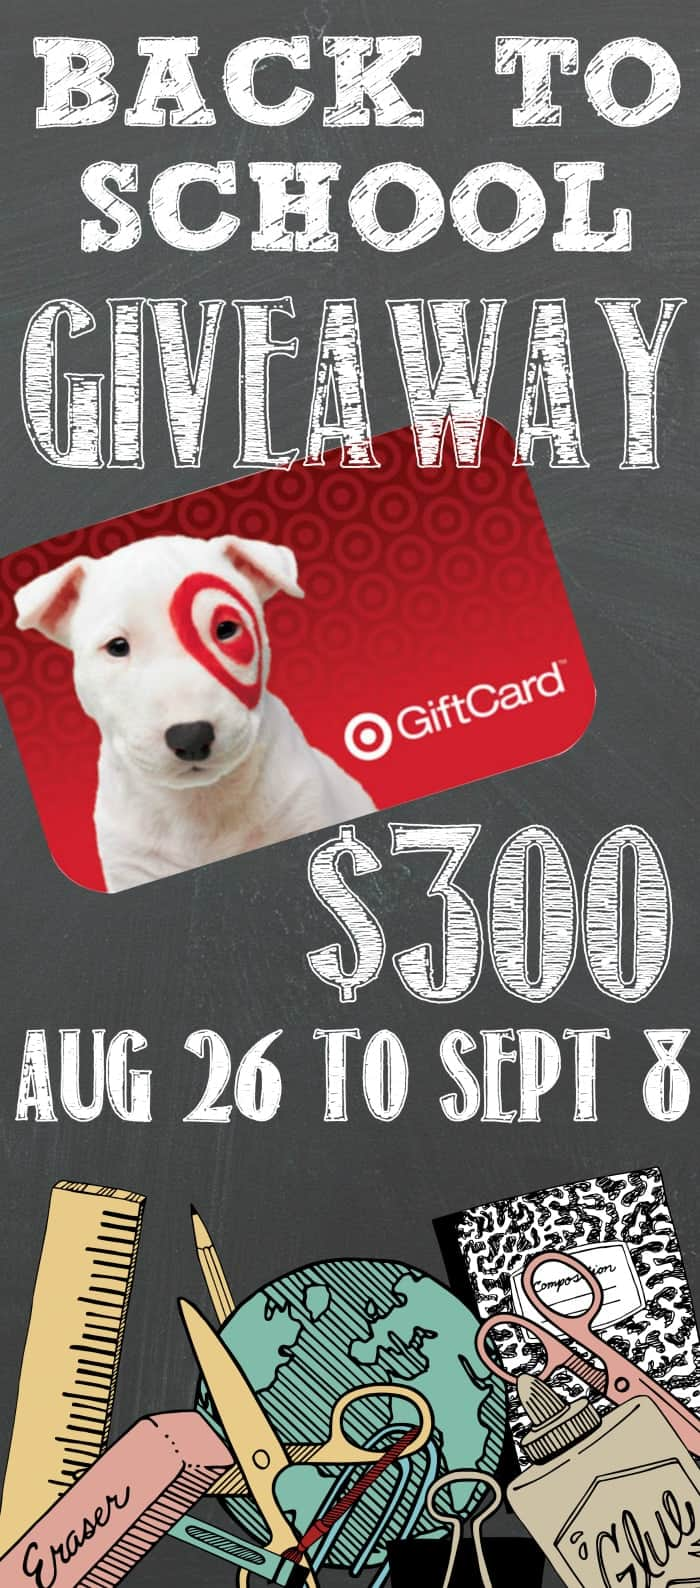 $300 Target Back to School Giveaway to help lighten the load of all those backpacks, pencils, markers, etc! via www.wineandglue.com